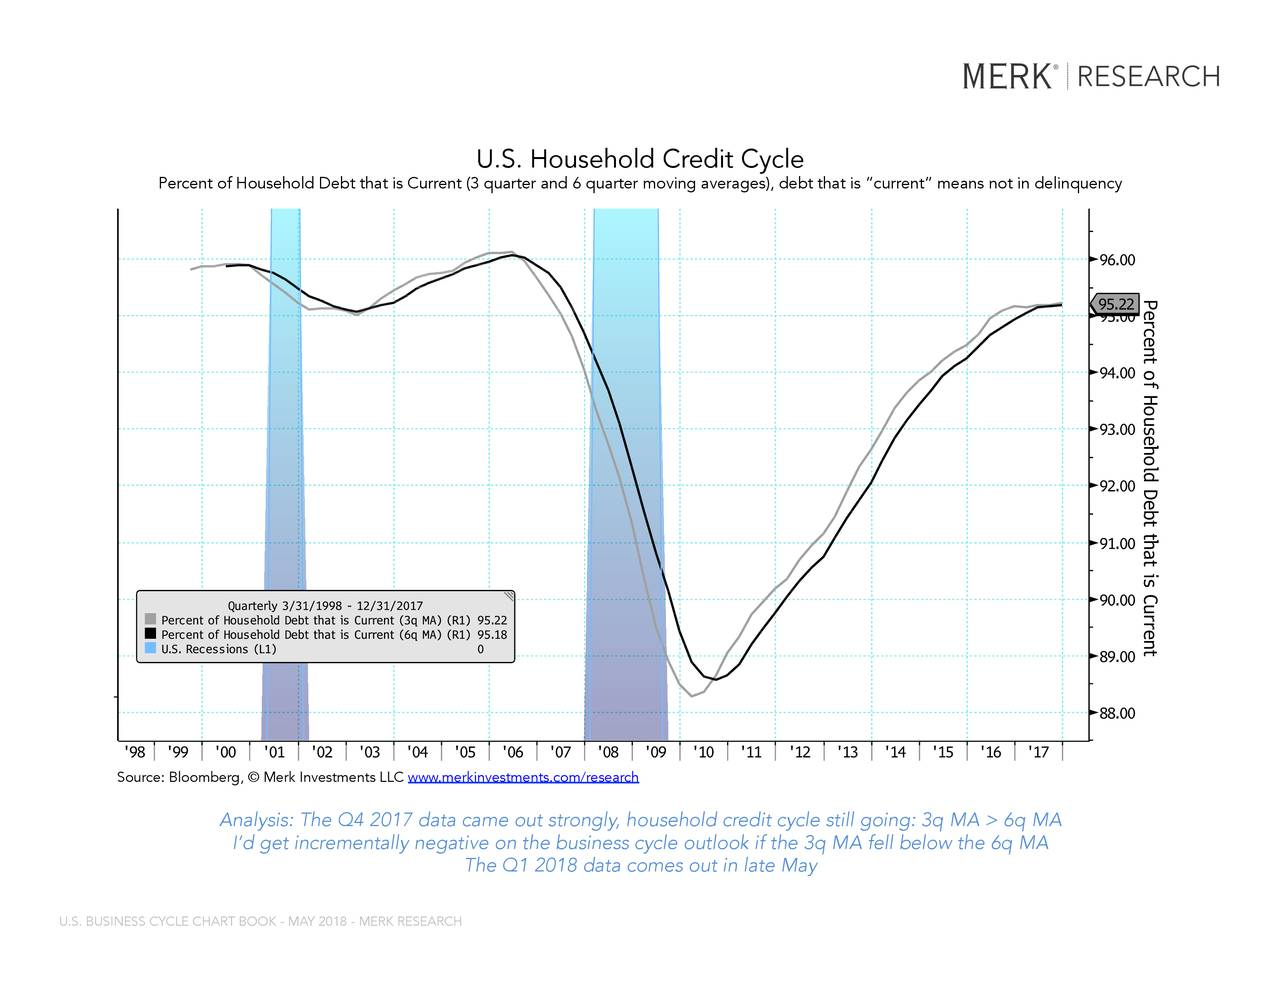 an analysis of an essay about the business cycle recession and their volatility A) according to national bureau of economic research (2010) recession is a period between peak and trough of a business cycle in which there is a sharp decline in the overall economic activity of a country and it can last from few months to more than a year.